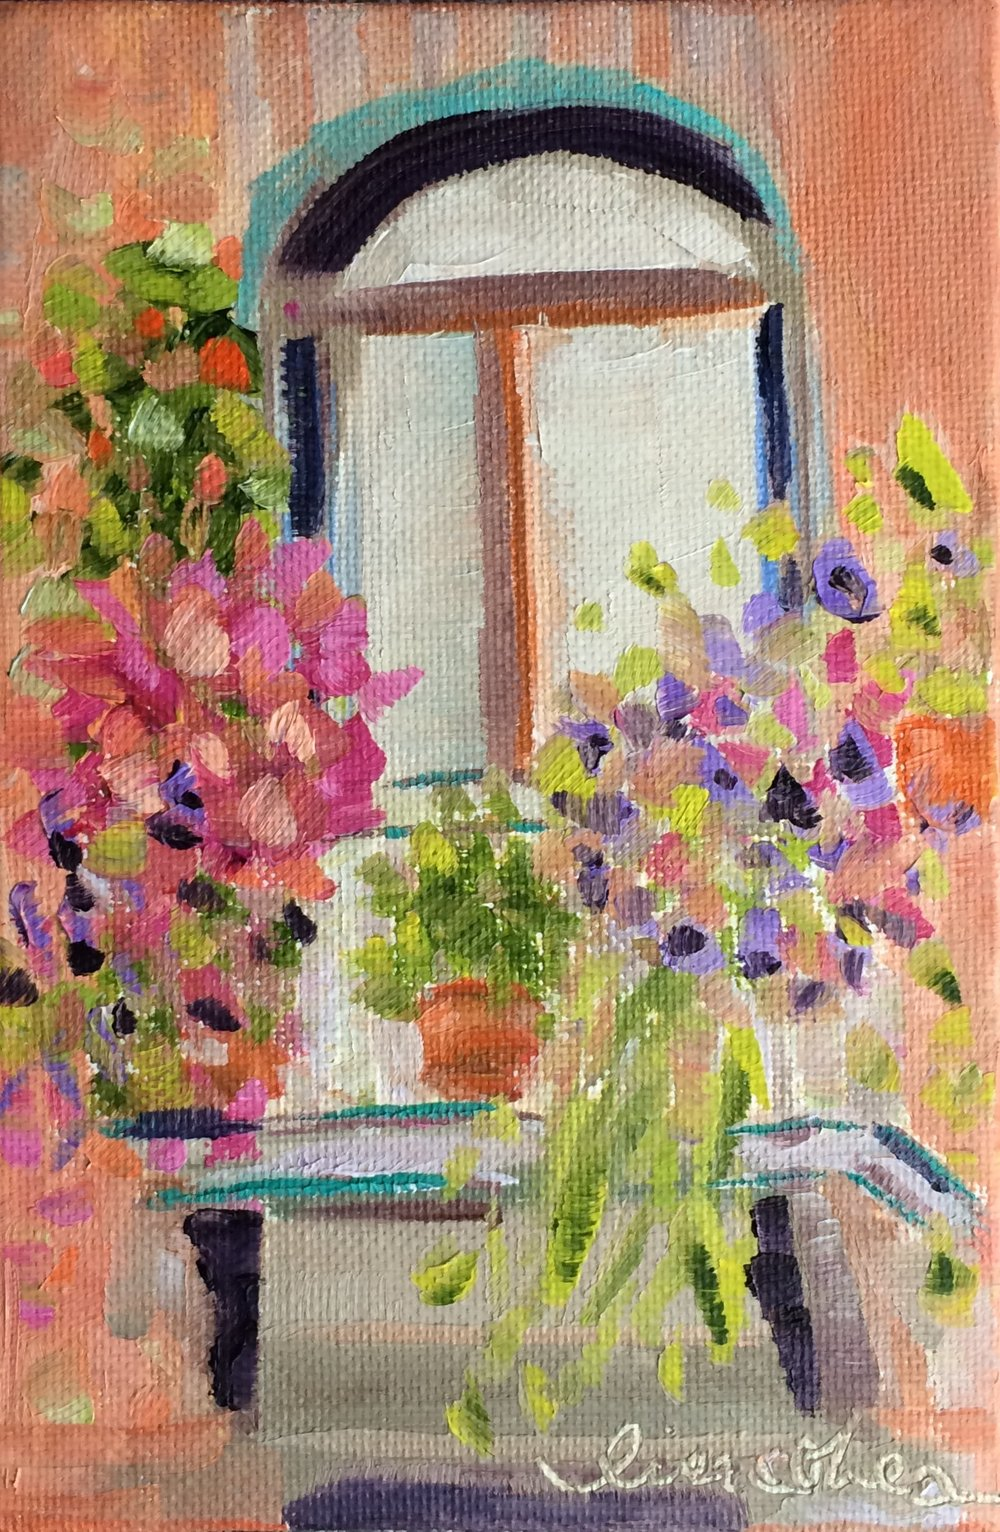 67 Balcony Blooms - Original Floral Abstract Expressionist Painting - Lisa Cohen.jpg